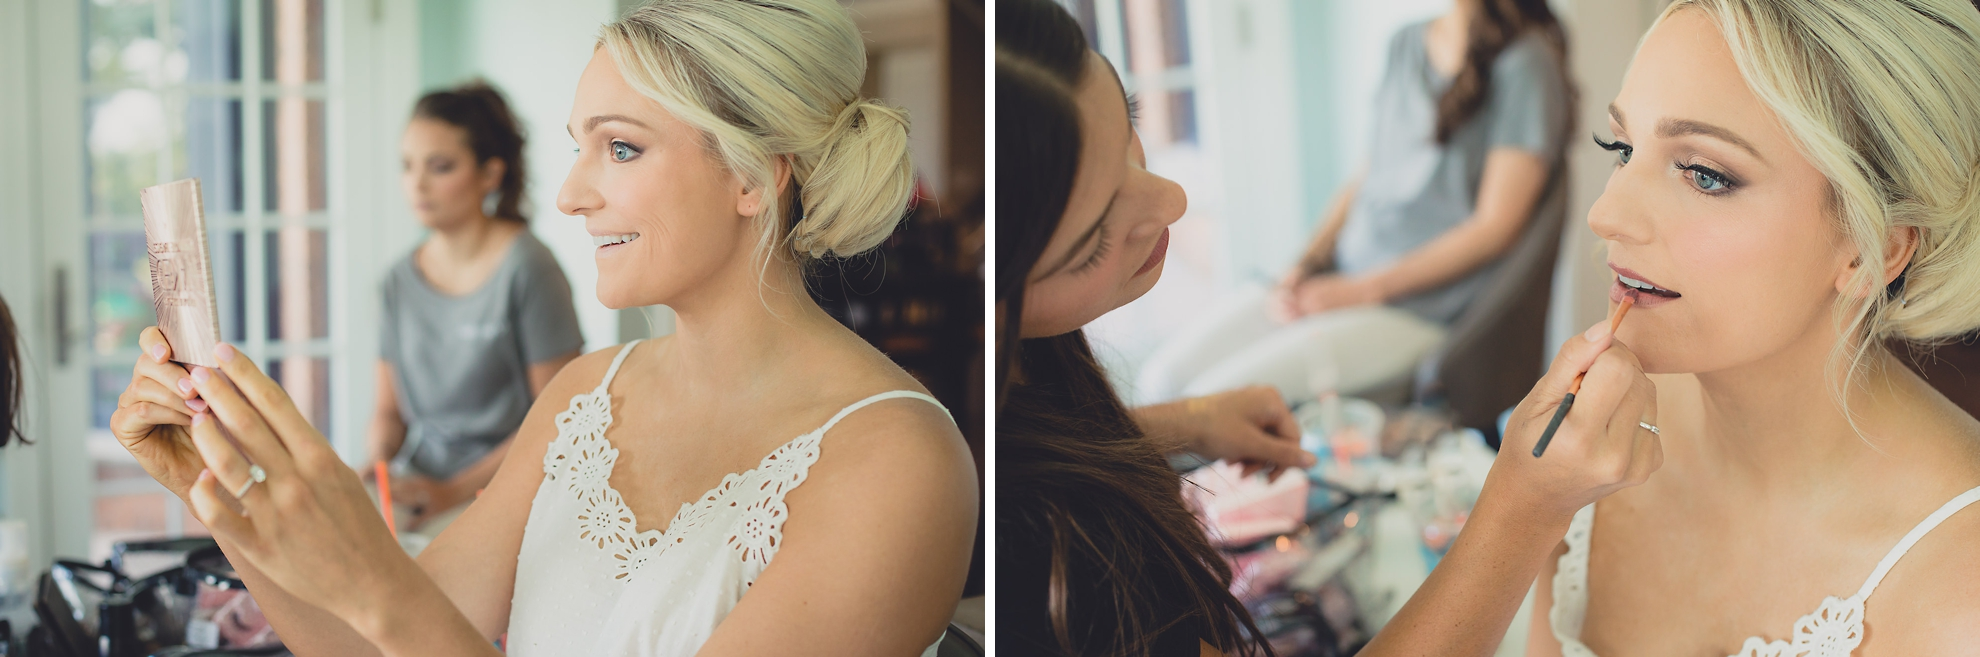 bride has makeup done before wedding in Lewiston, NY